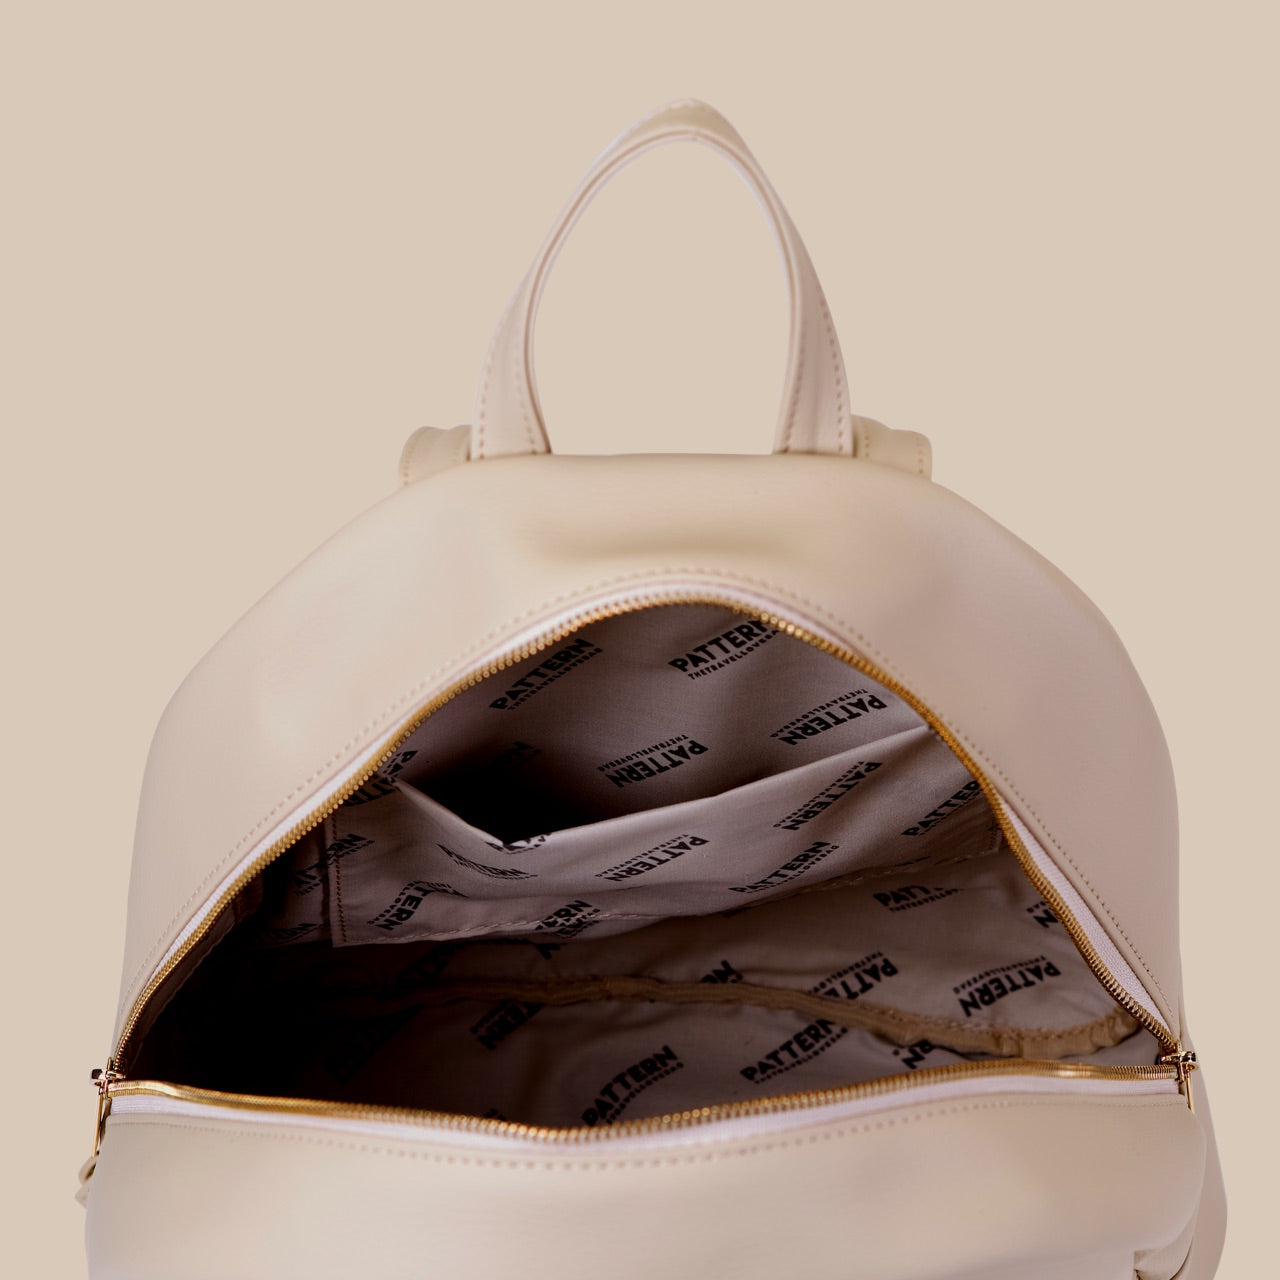 Backpack Bassotto ivory